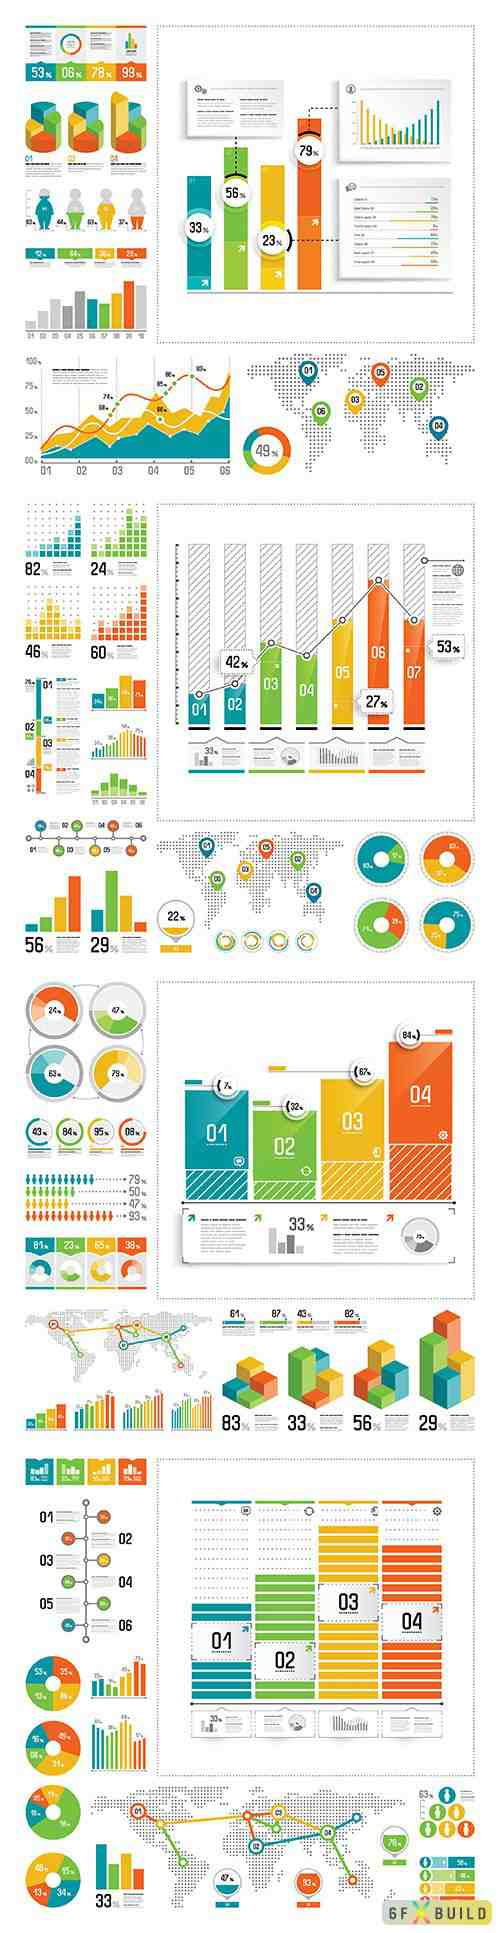 Infographic vector elements